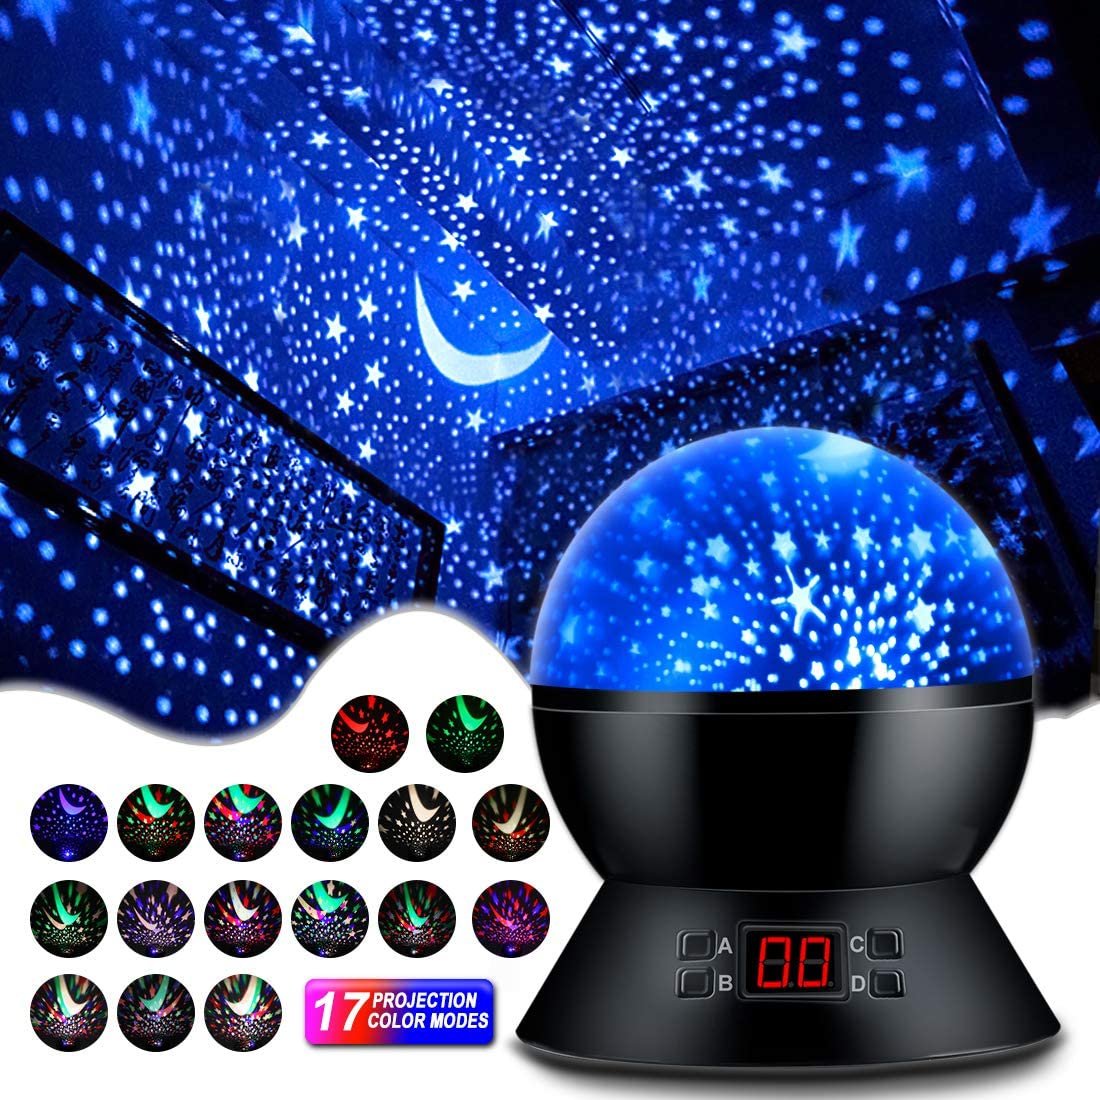 Best Night Light Projector Reviews For kids (2021) 13